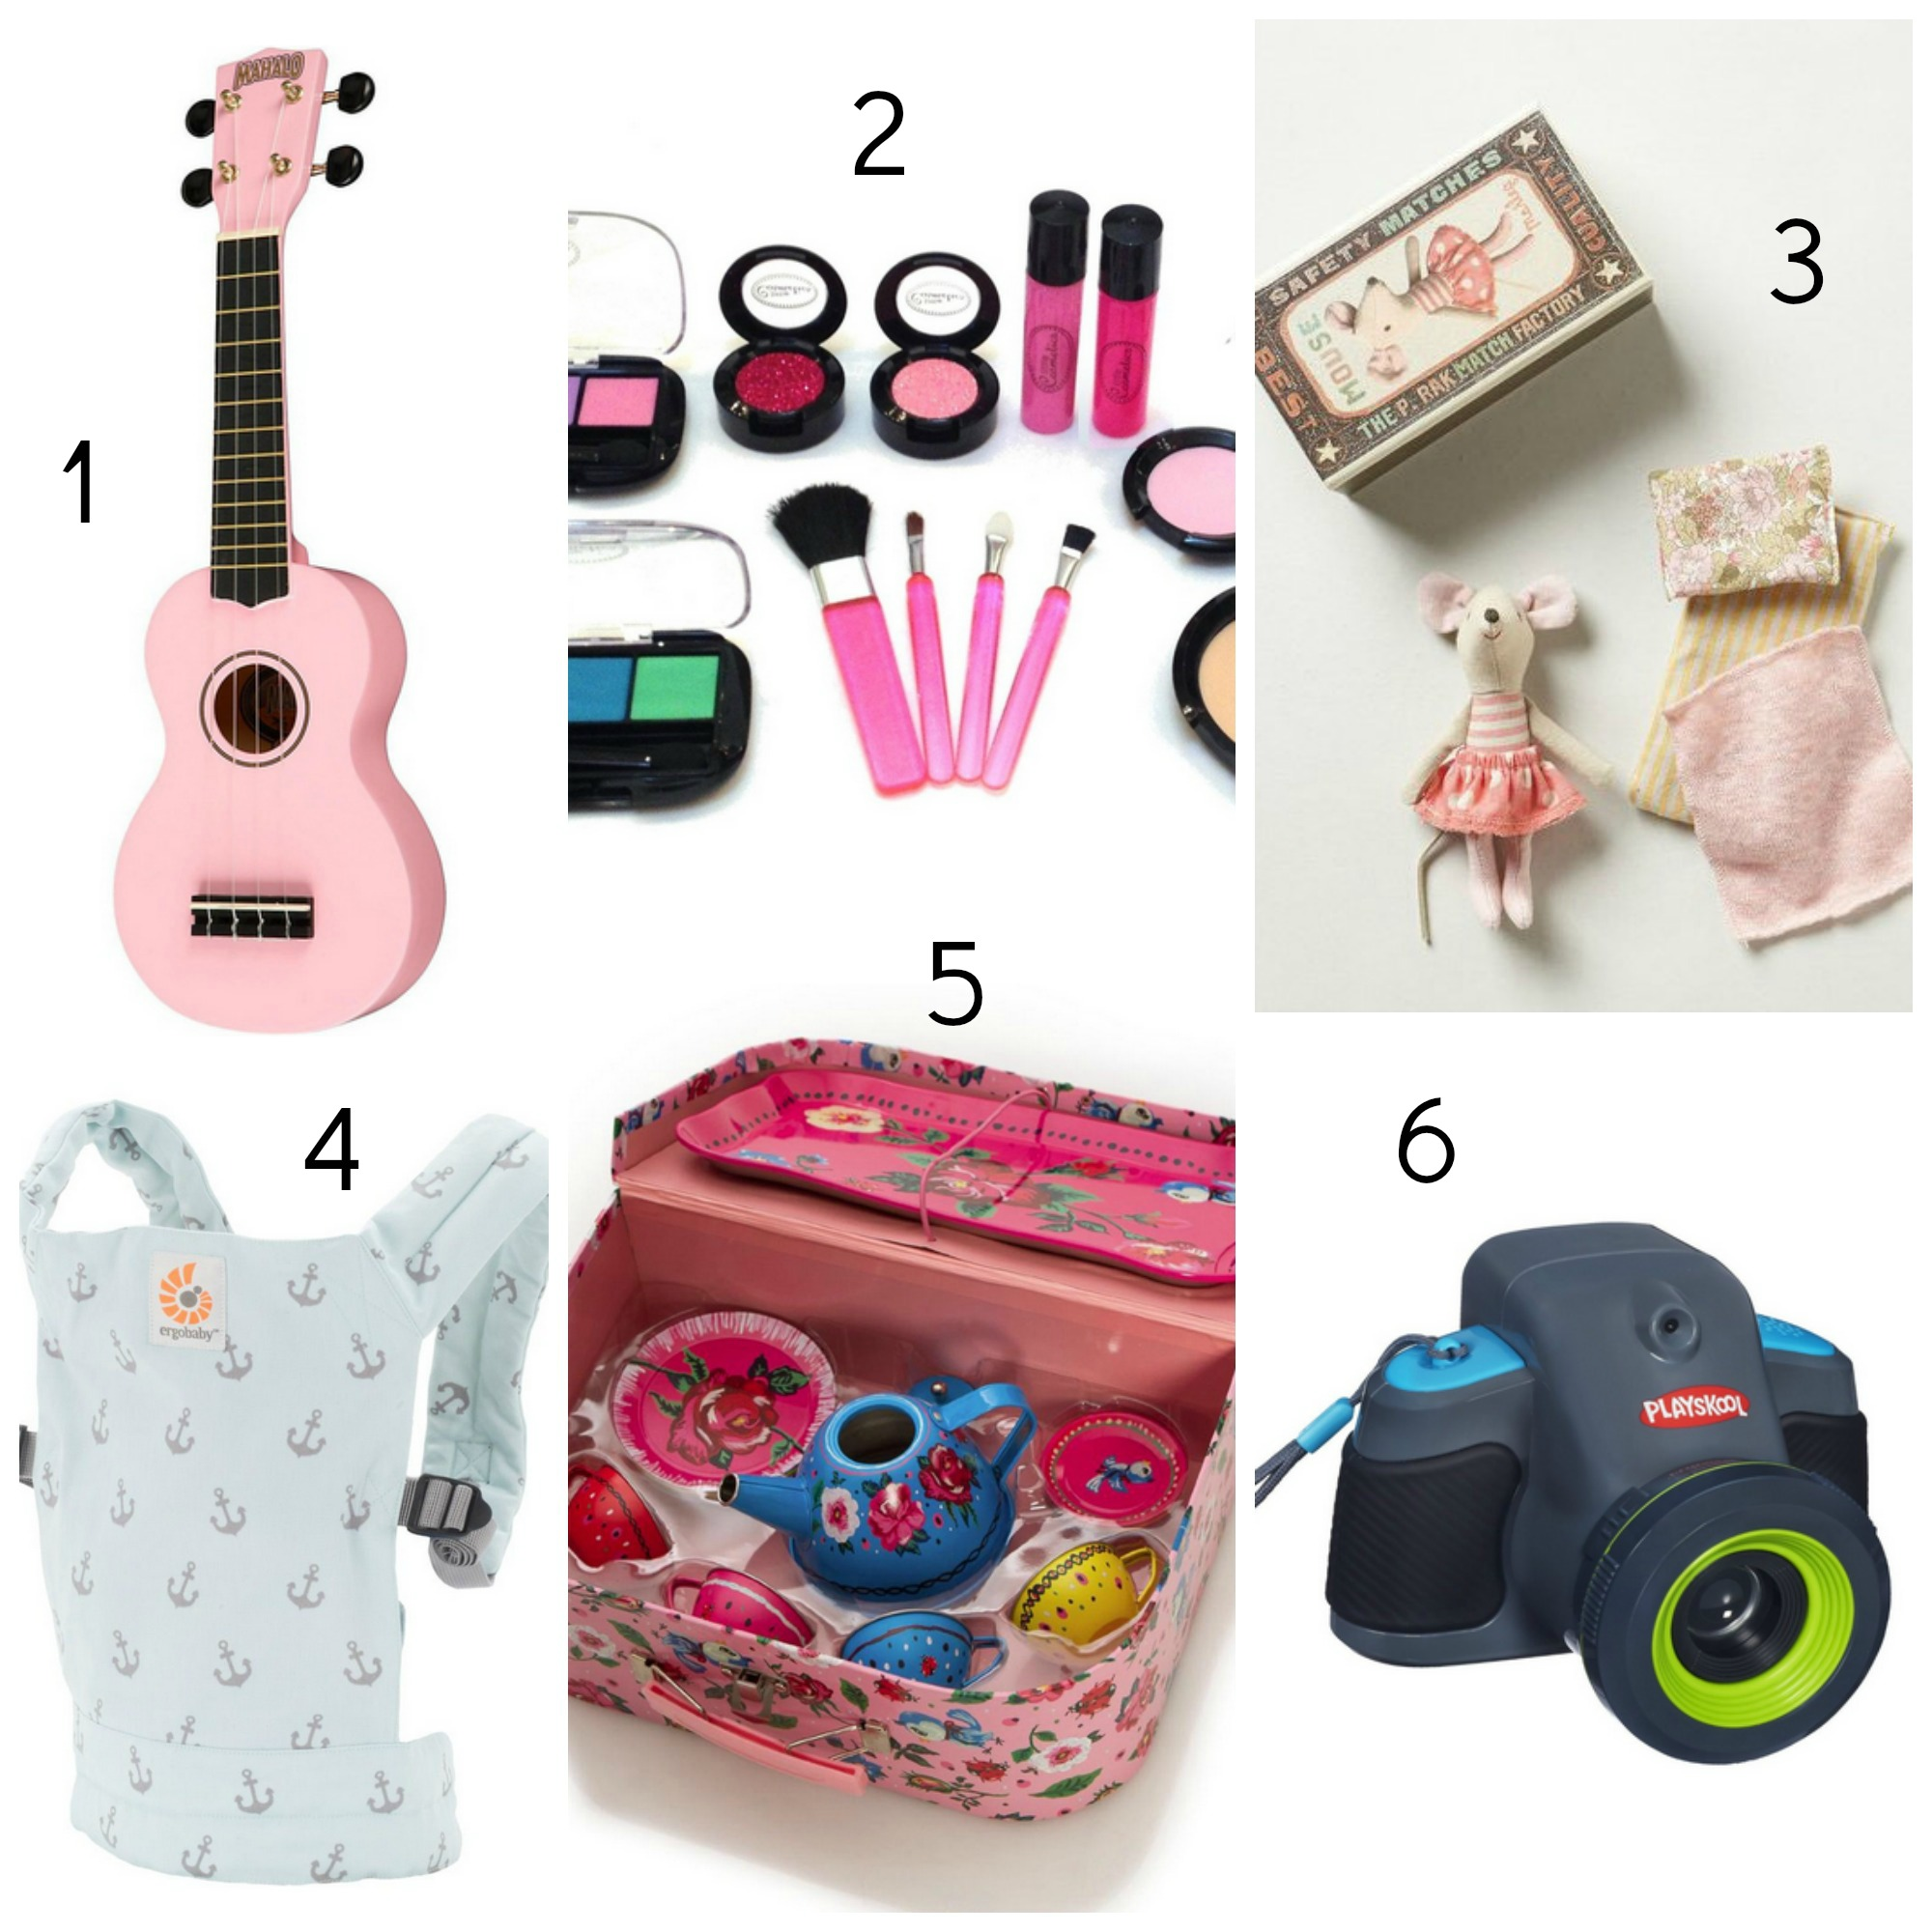 5 Year Old Christmas Gifts: Gift Guide For Little Girls: 3-5 Year Olds